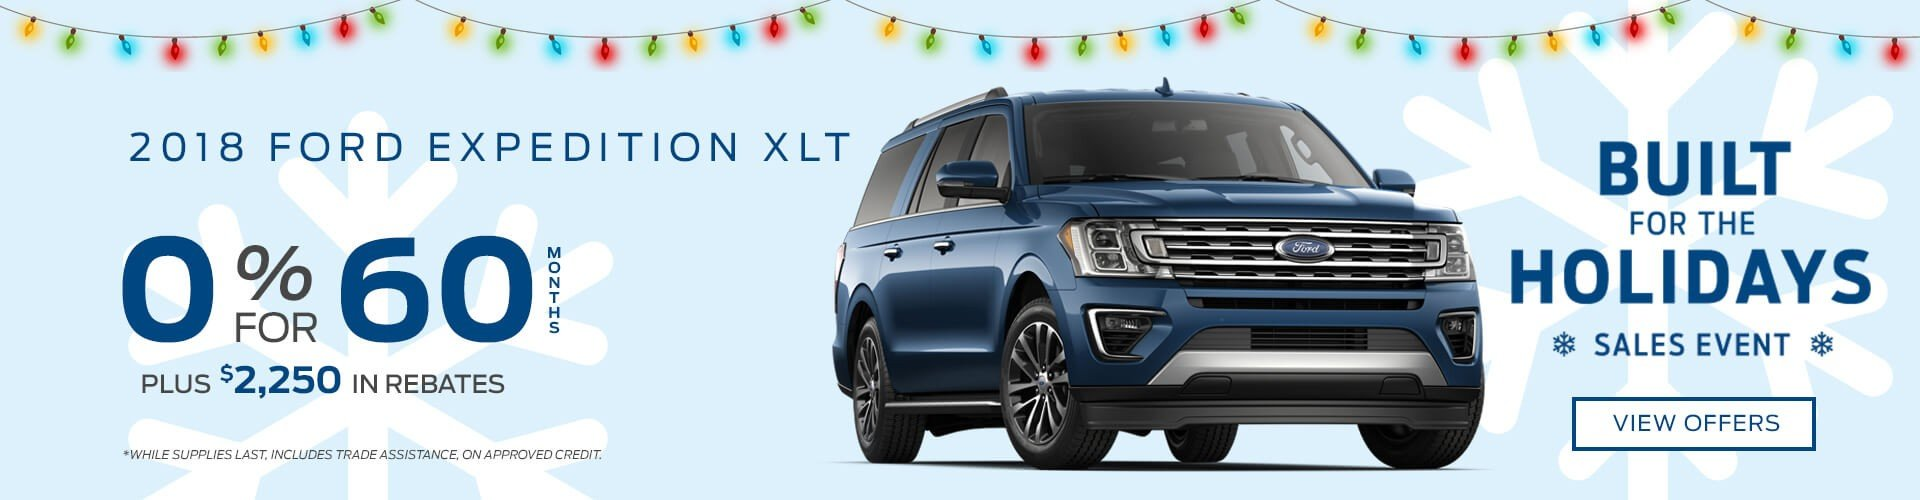 Special offer on 2018 Ford Expedition 2018 Ford Expedition XLT